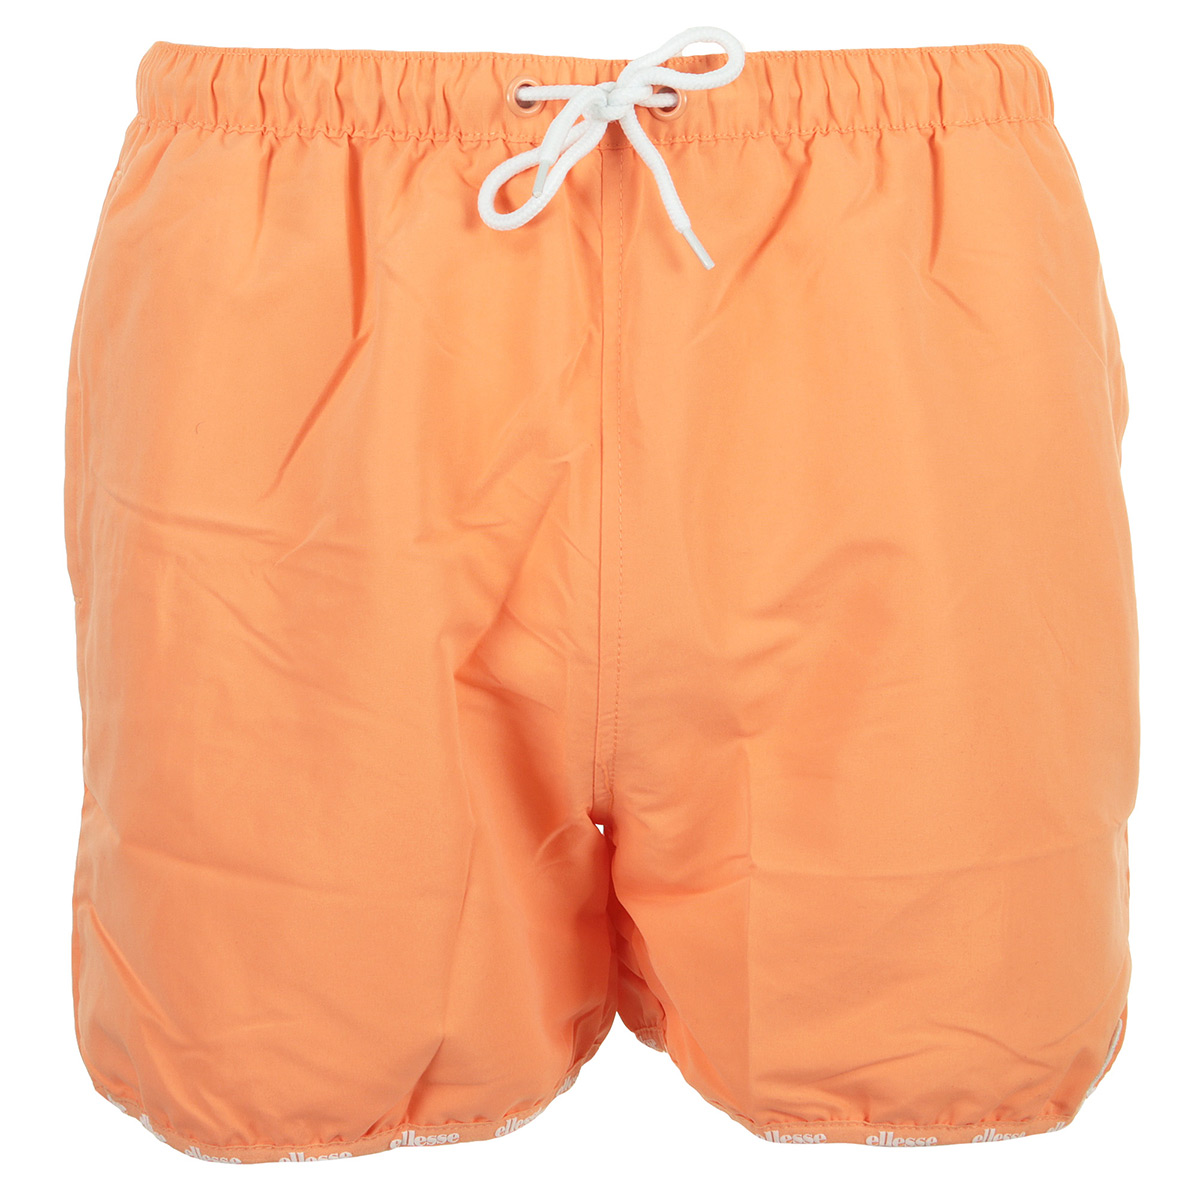 Ellesse Sankeys Swim Short